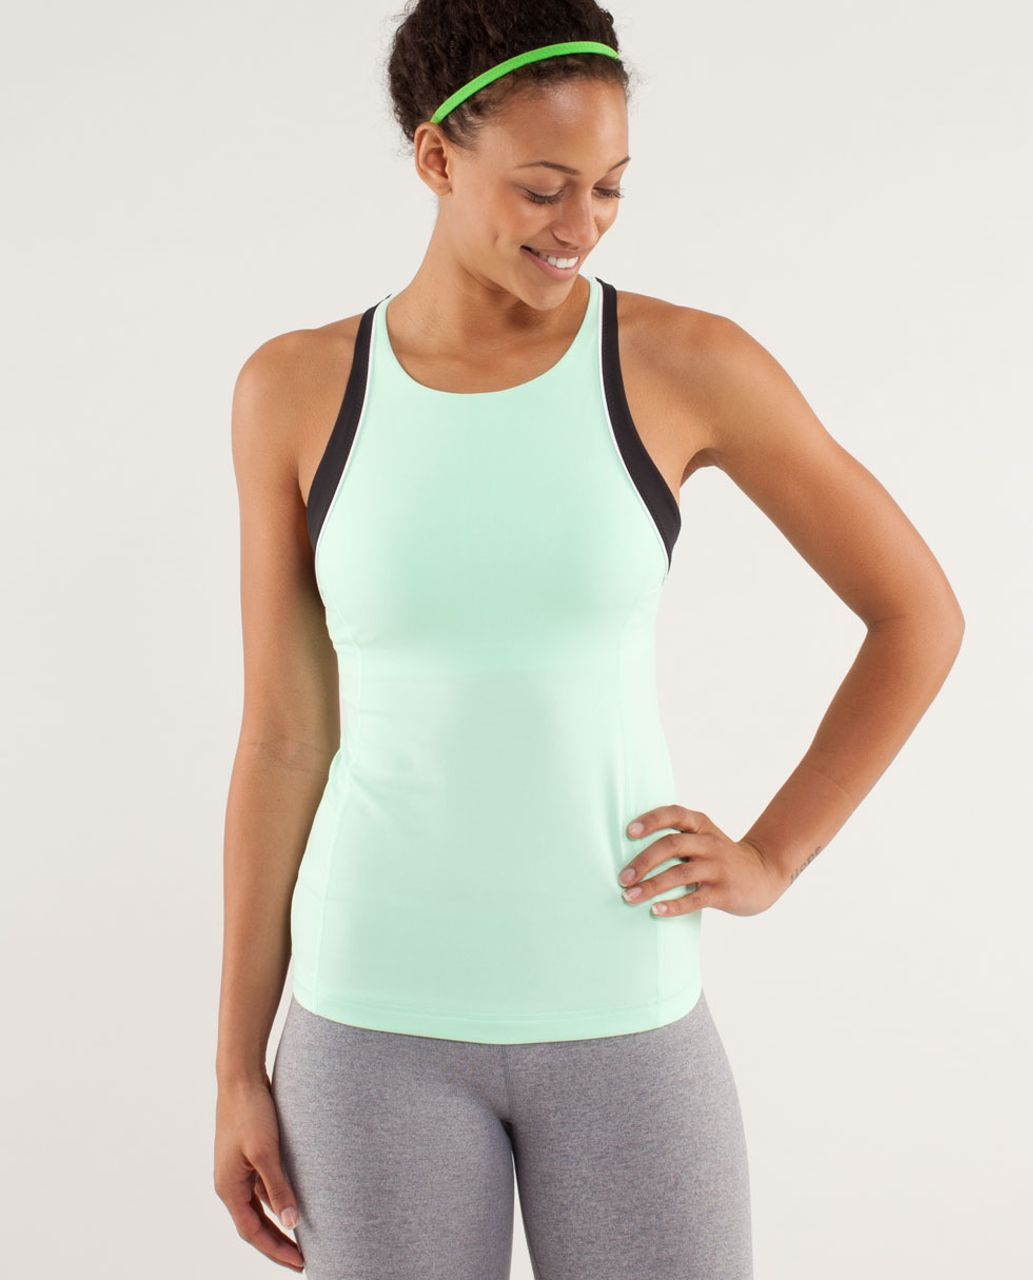 Lululemon Vinyasa Surf Tank - Fresh Teal / White / Black